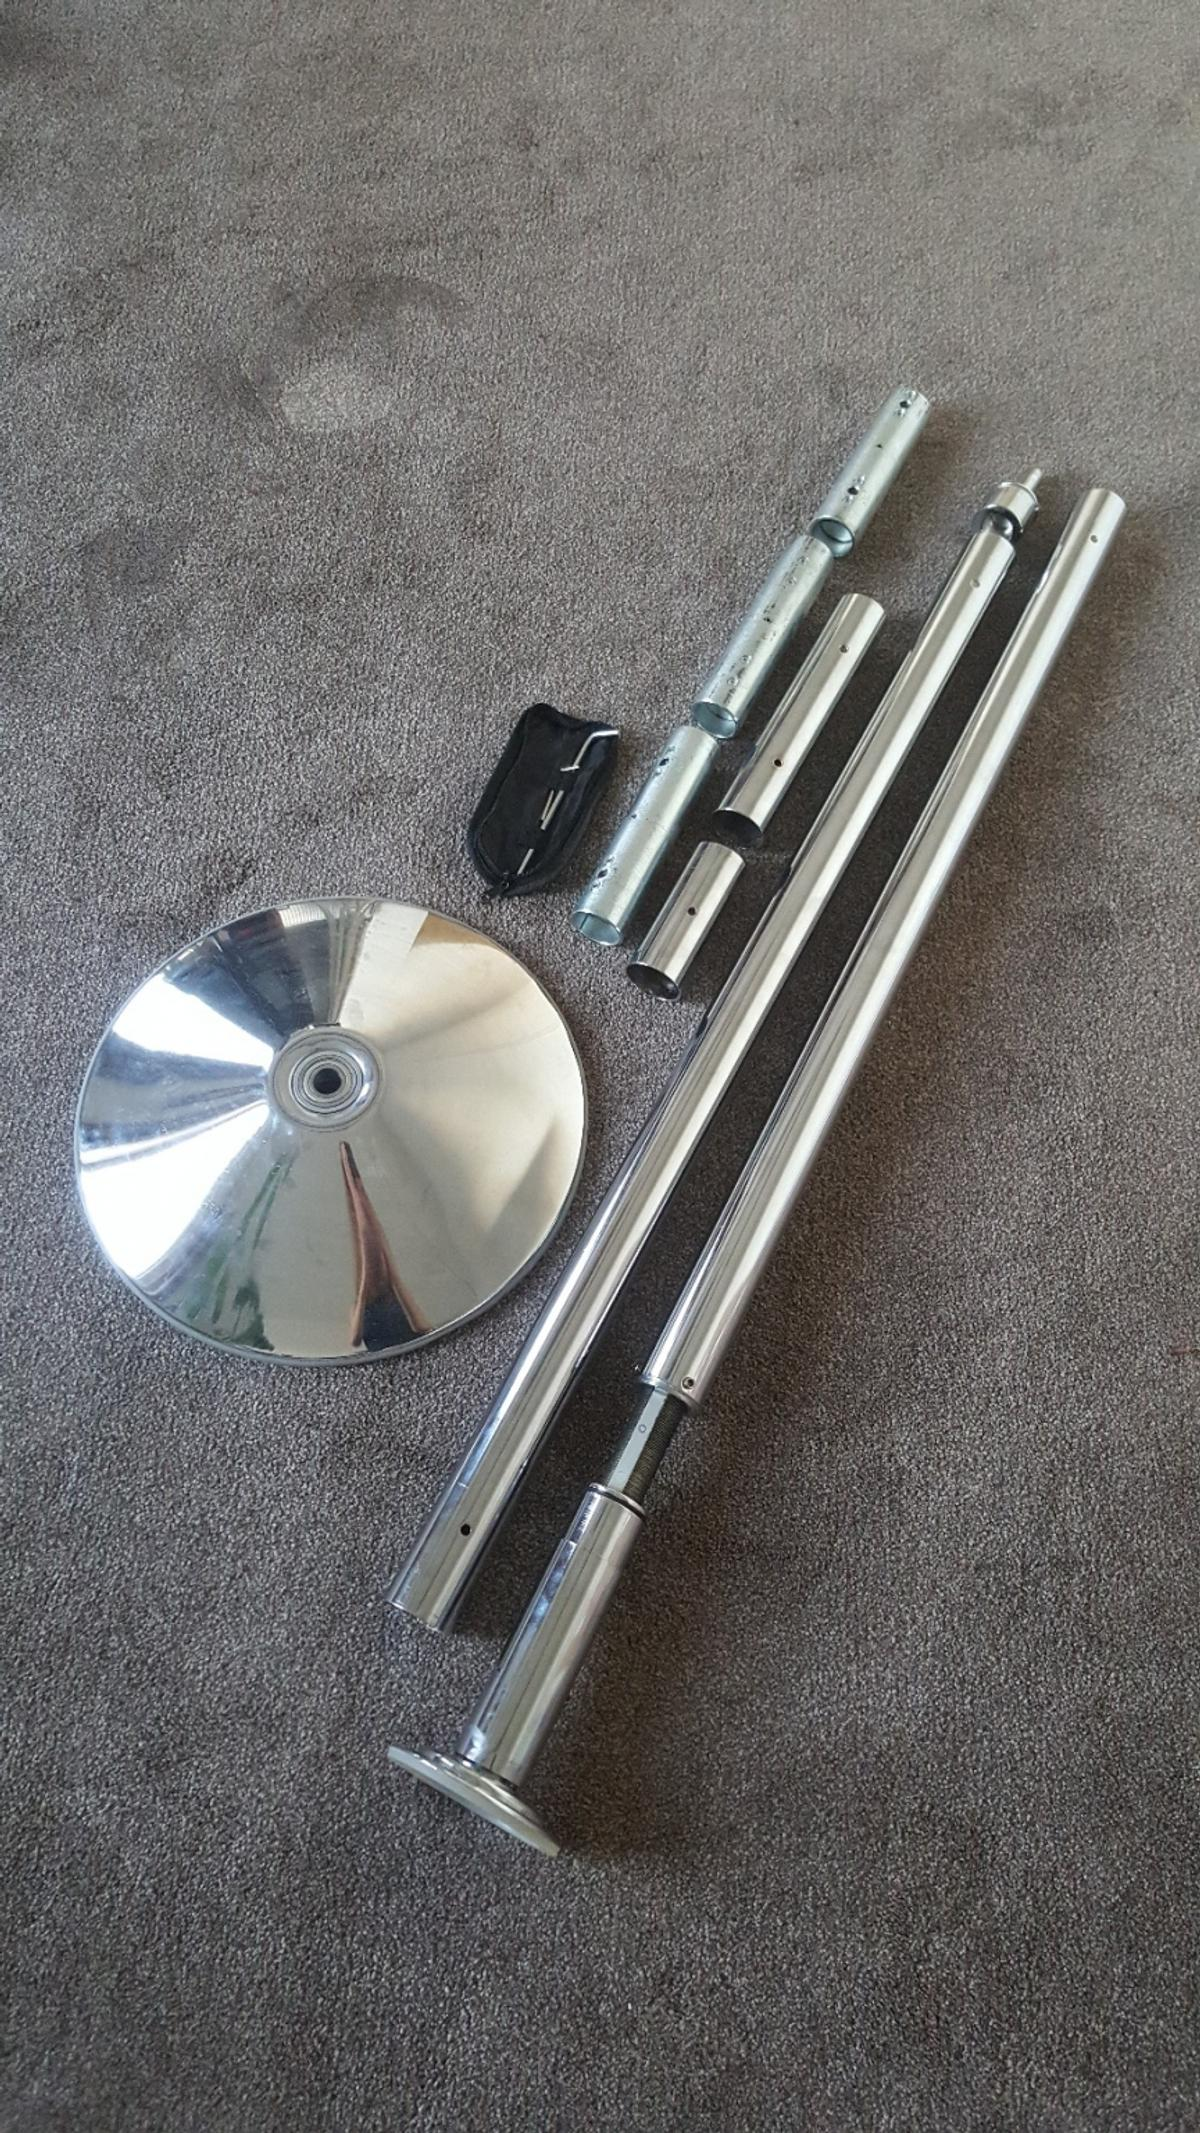 X-pole Xpert dance pole, chrome finish, 45mm diameter. Has spinning and static option. Super easy to assemble. Fits ceiling height 2235-2745 mm). All original bits in very good condition (no bag).